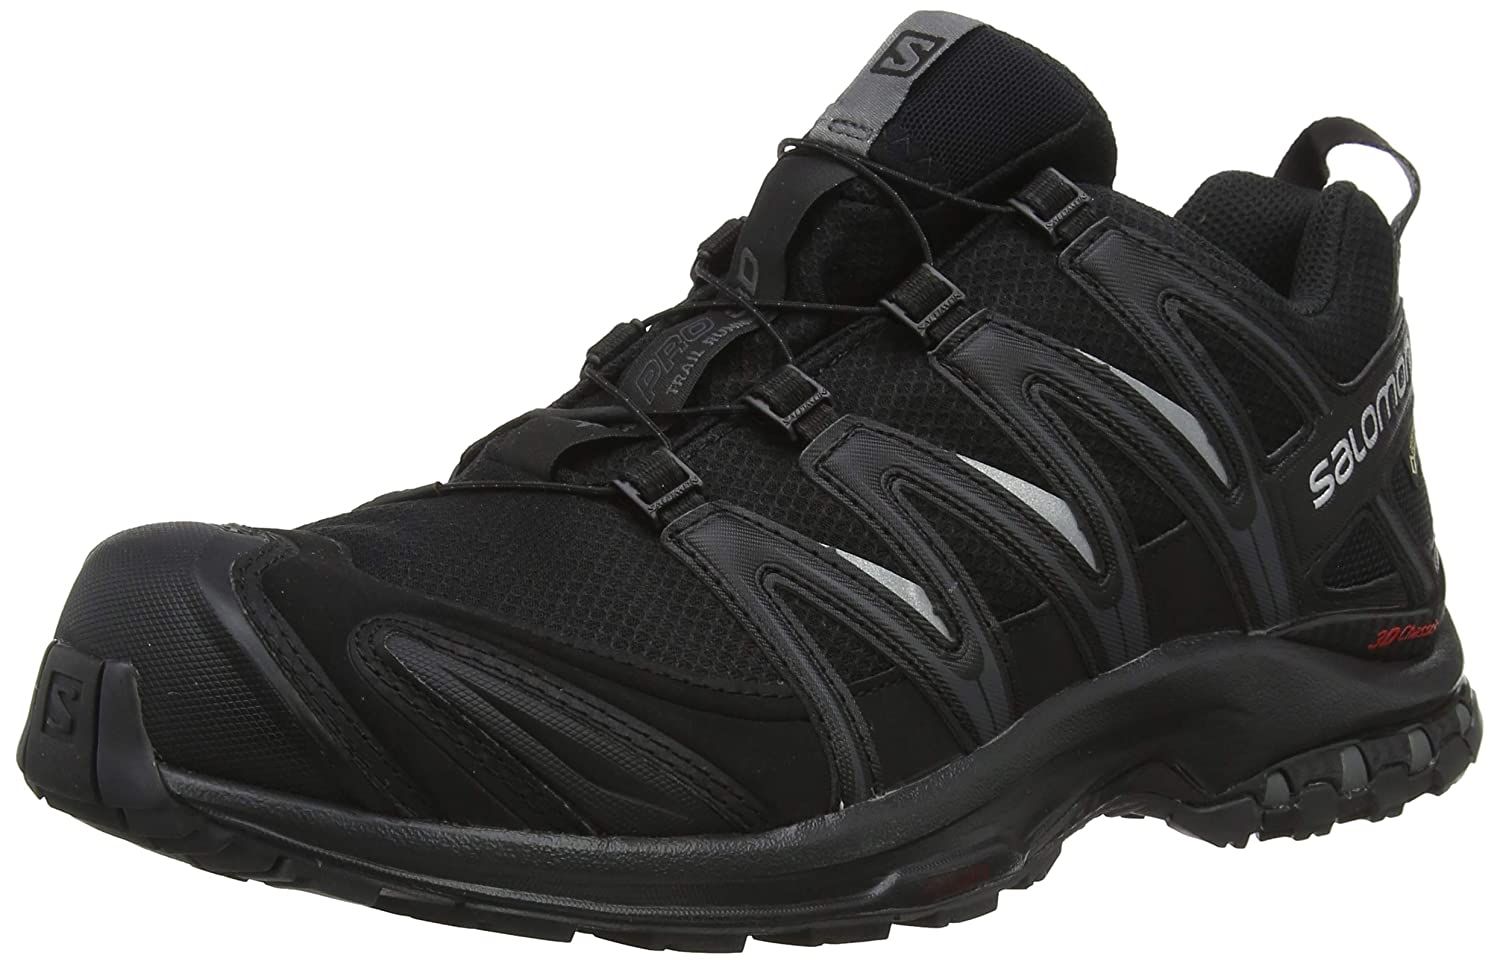 e95cbc943674 Salomon Men s Xa Pro 3D GTX Trail Running Shoes  Amazon.co.uk  Shoes   Bags